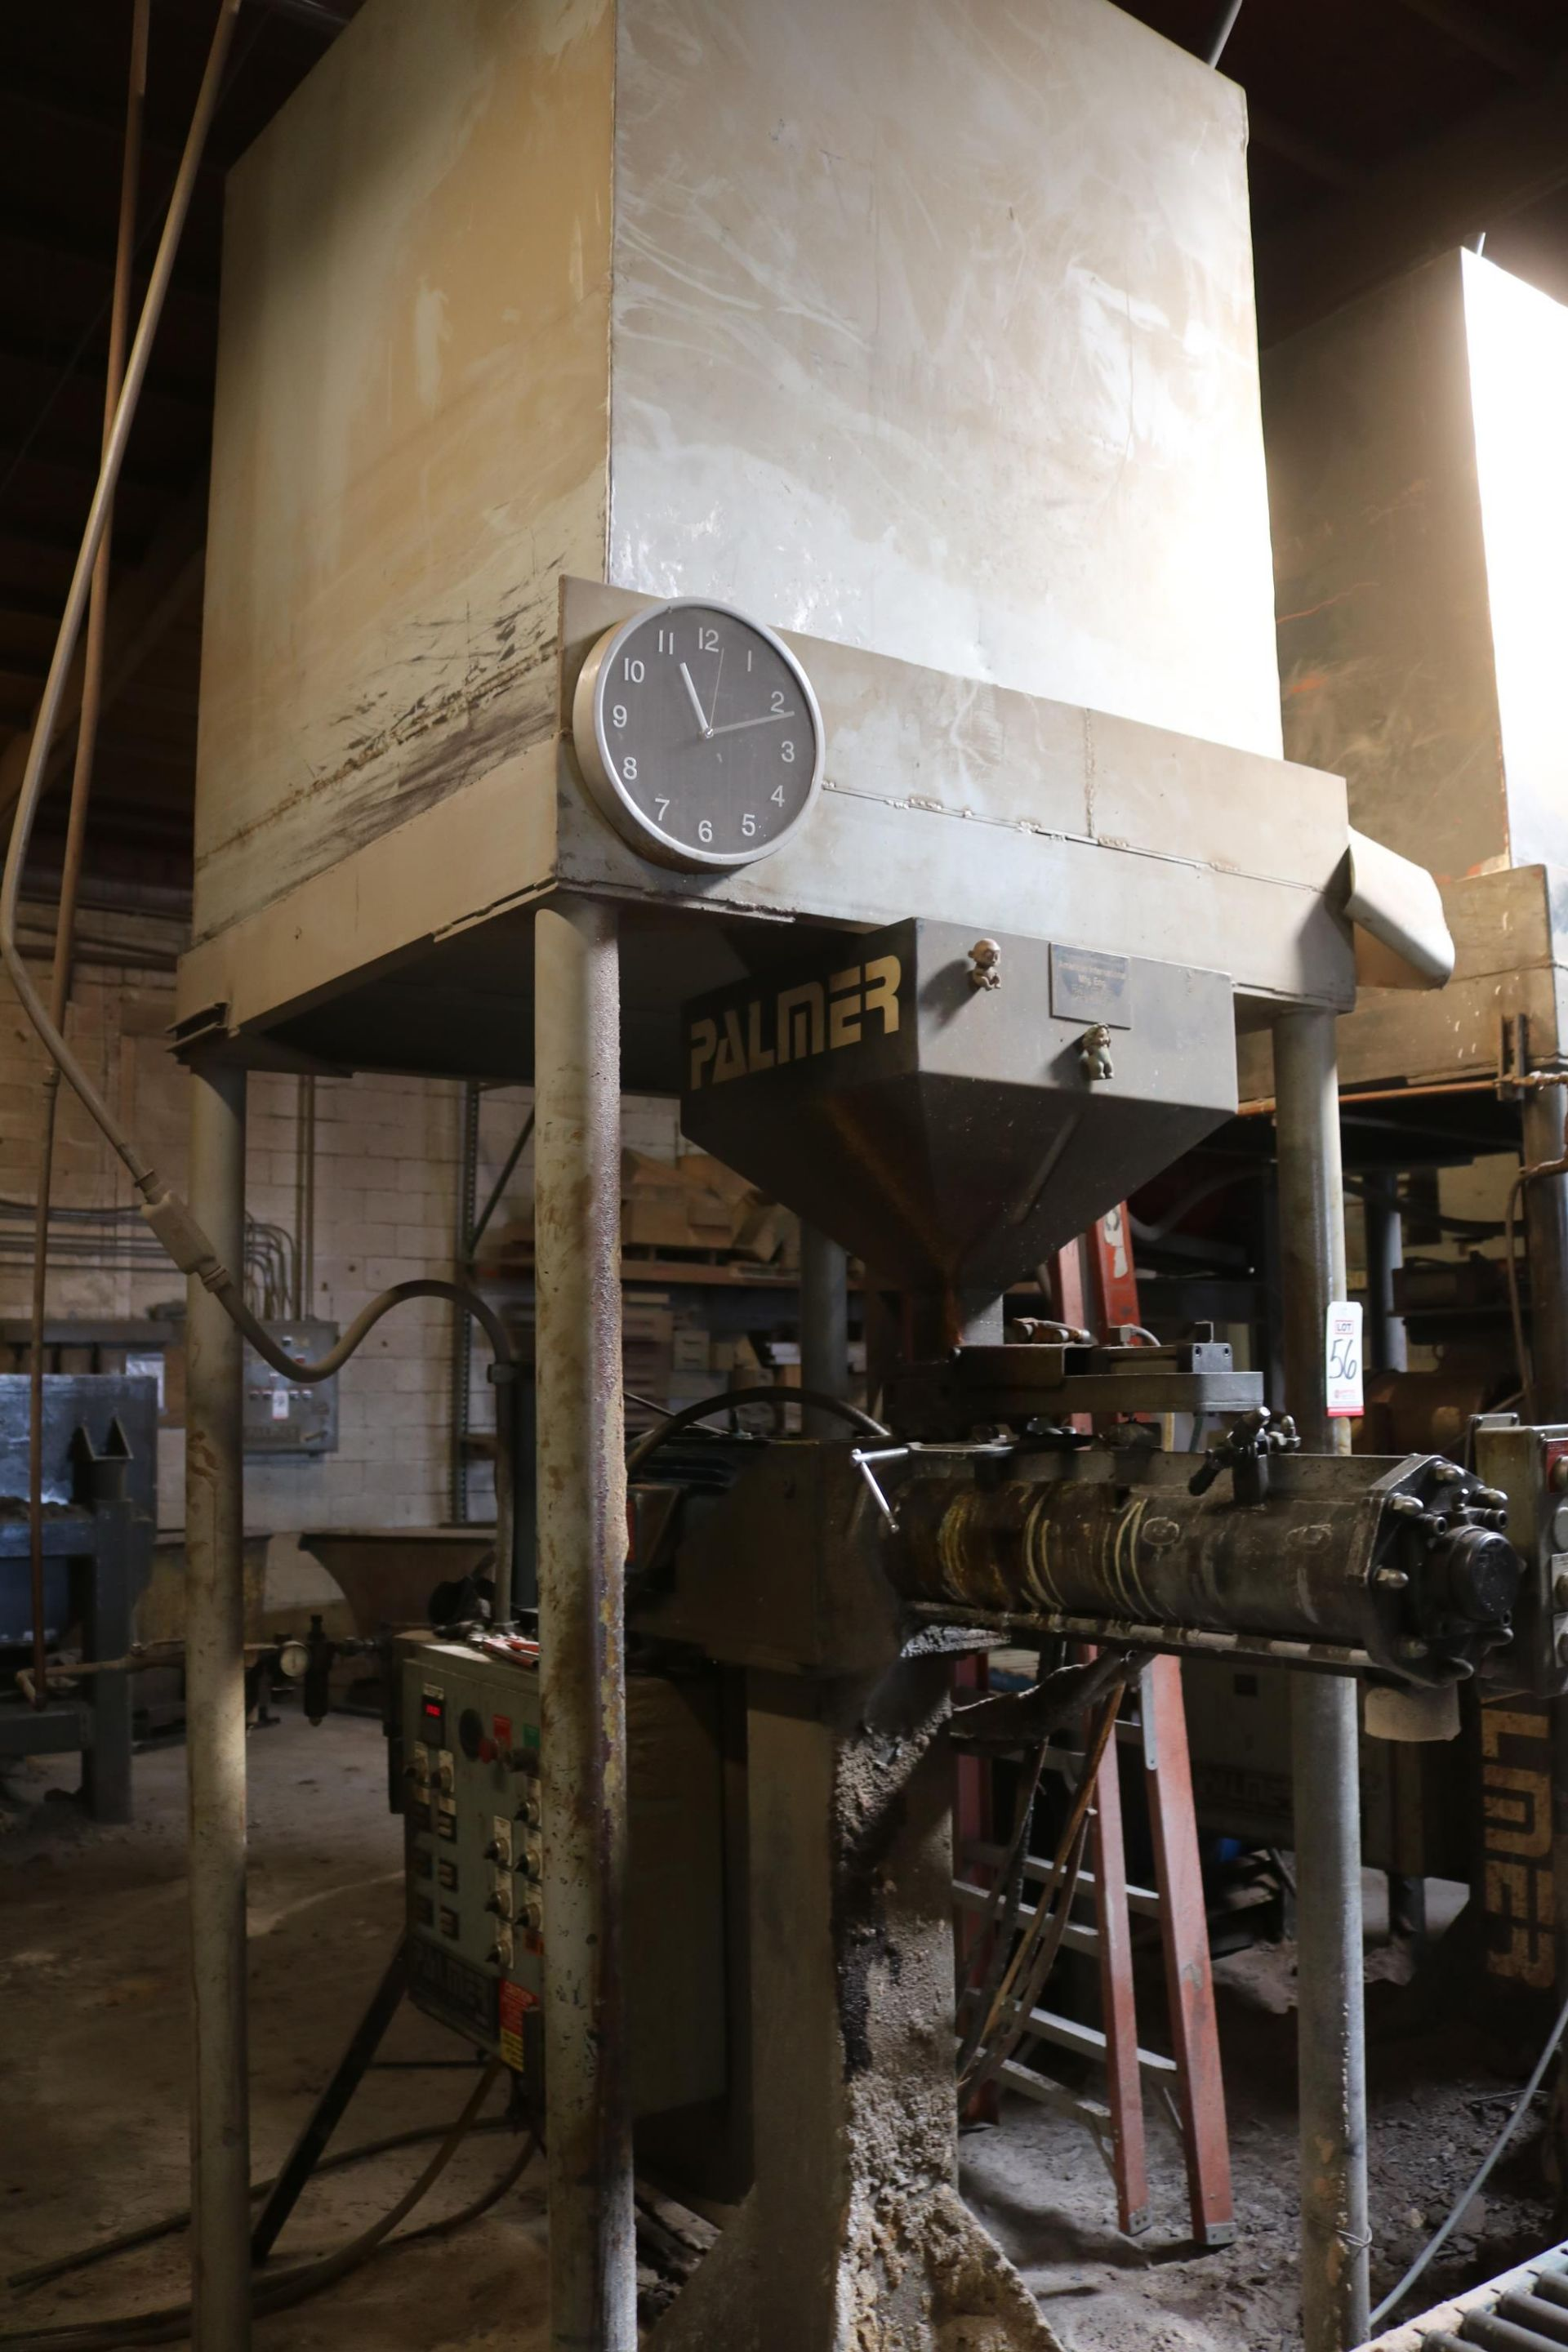 Lot 56 - 2001 PALMER MODEL M100XL CONTINUOUS SAND MIXER, PUMPS AND STAND, 1032 HOURS, S/N M290XL